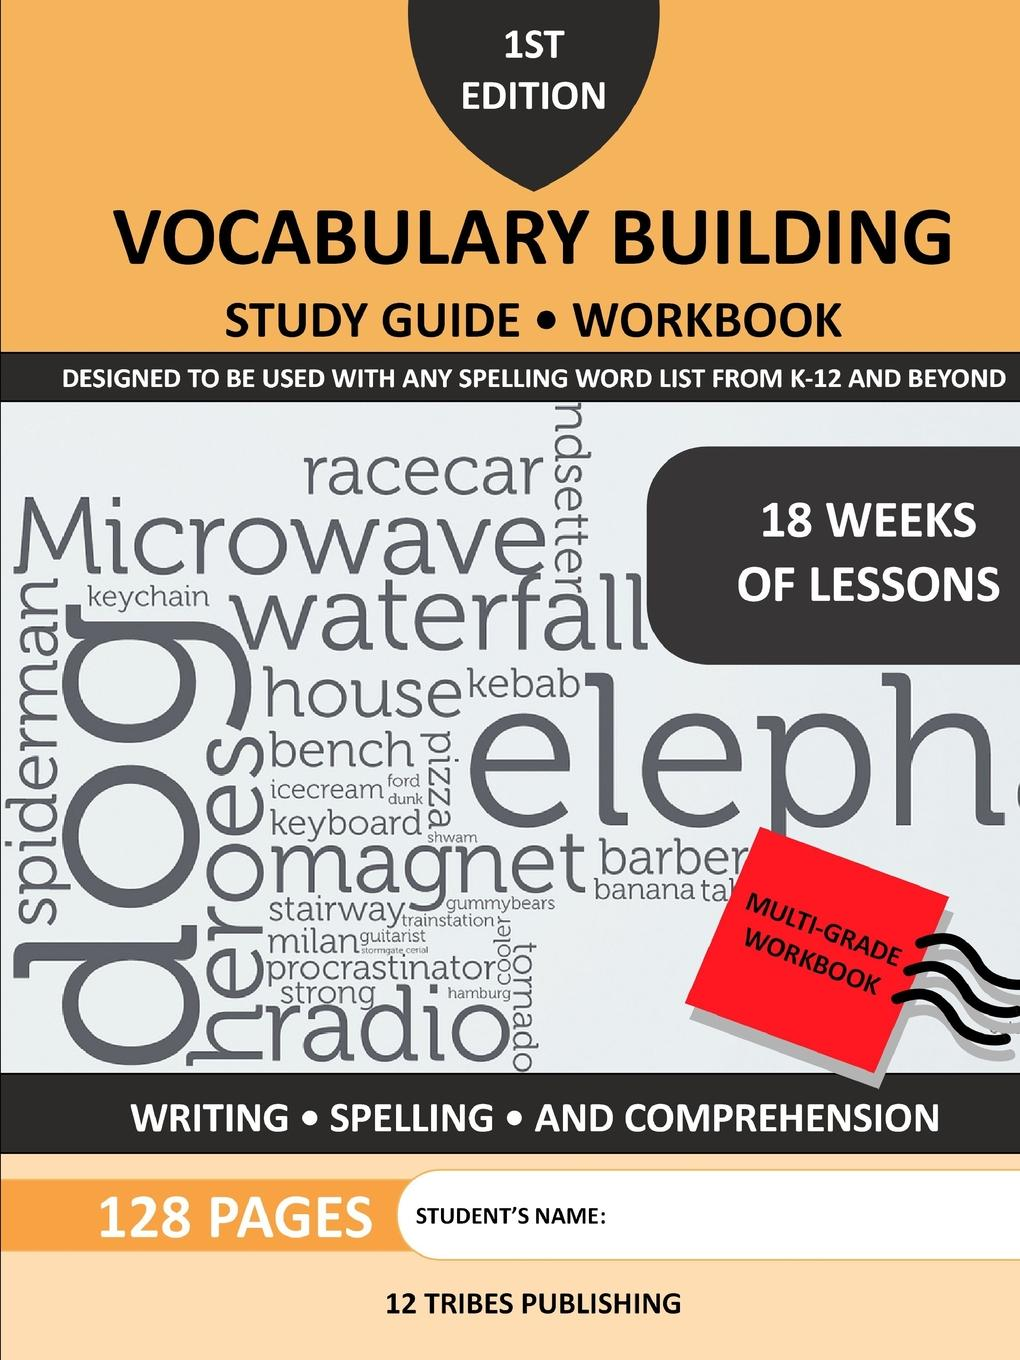 12 Tribes Publishi 12 Tribes Publishing VOCABULARY BUILDING STUDY GUIDE . WORKBOOK new female tribes